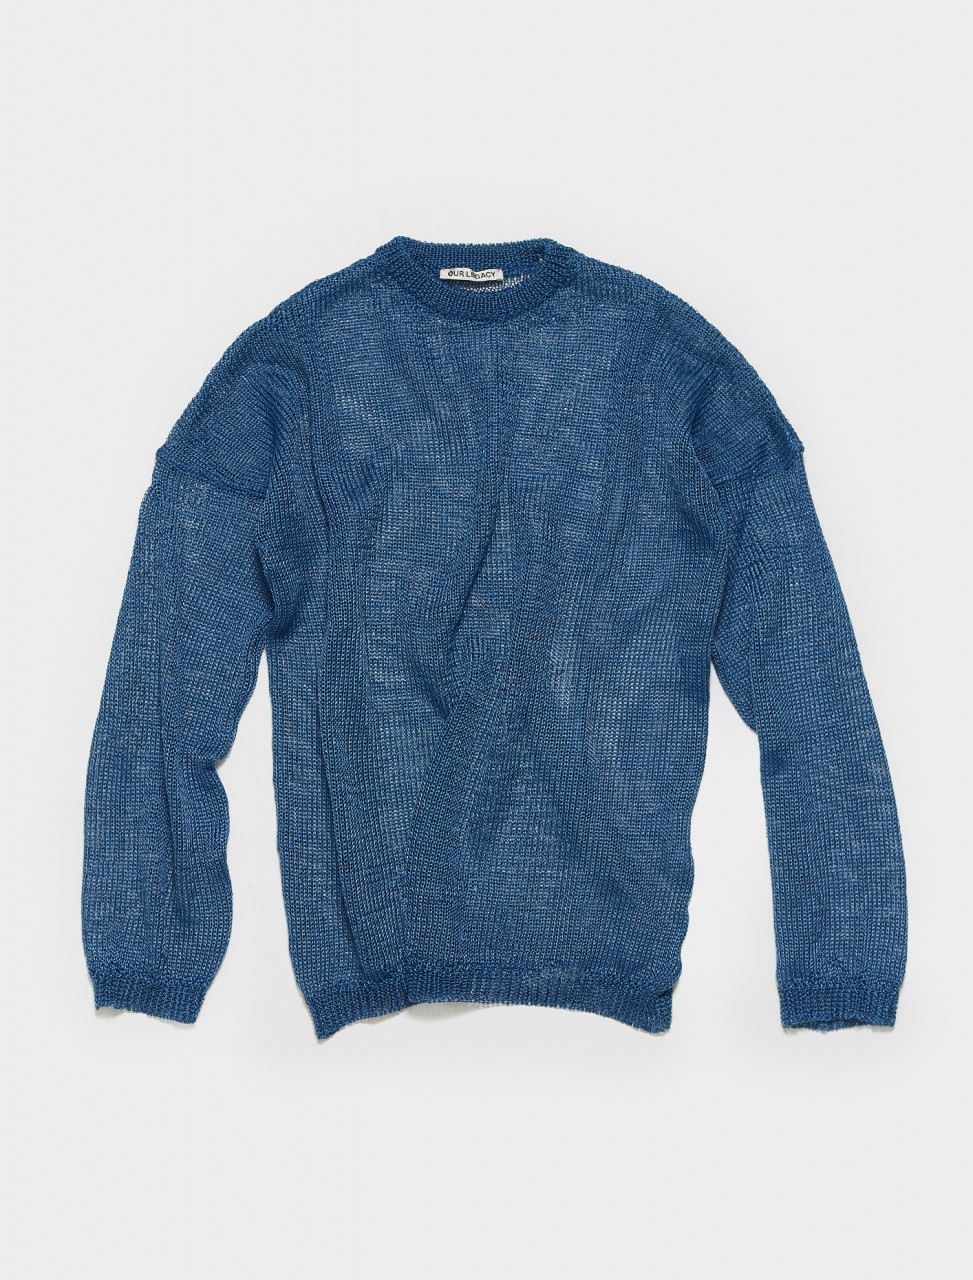 M2213PE OUR LEGACY POPOVER ROUNDNECK IN ELECTRIC BLUE